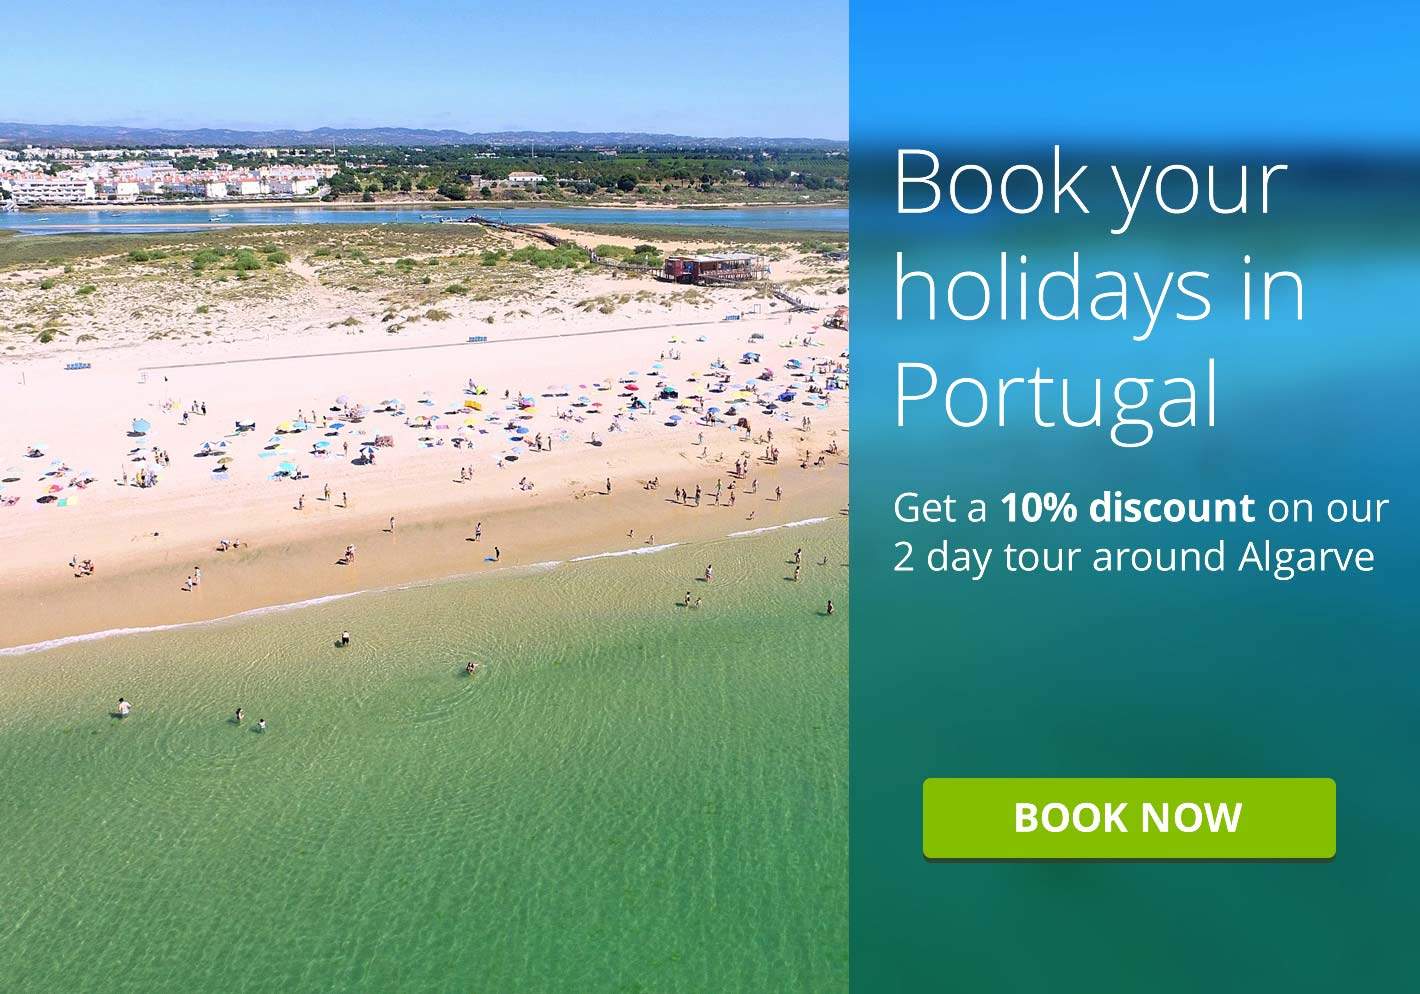 Get a 10% discount on our 2 day tour around Algarve